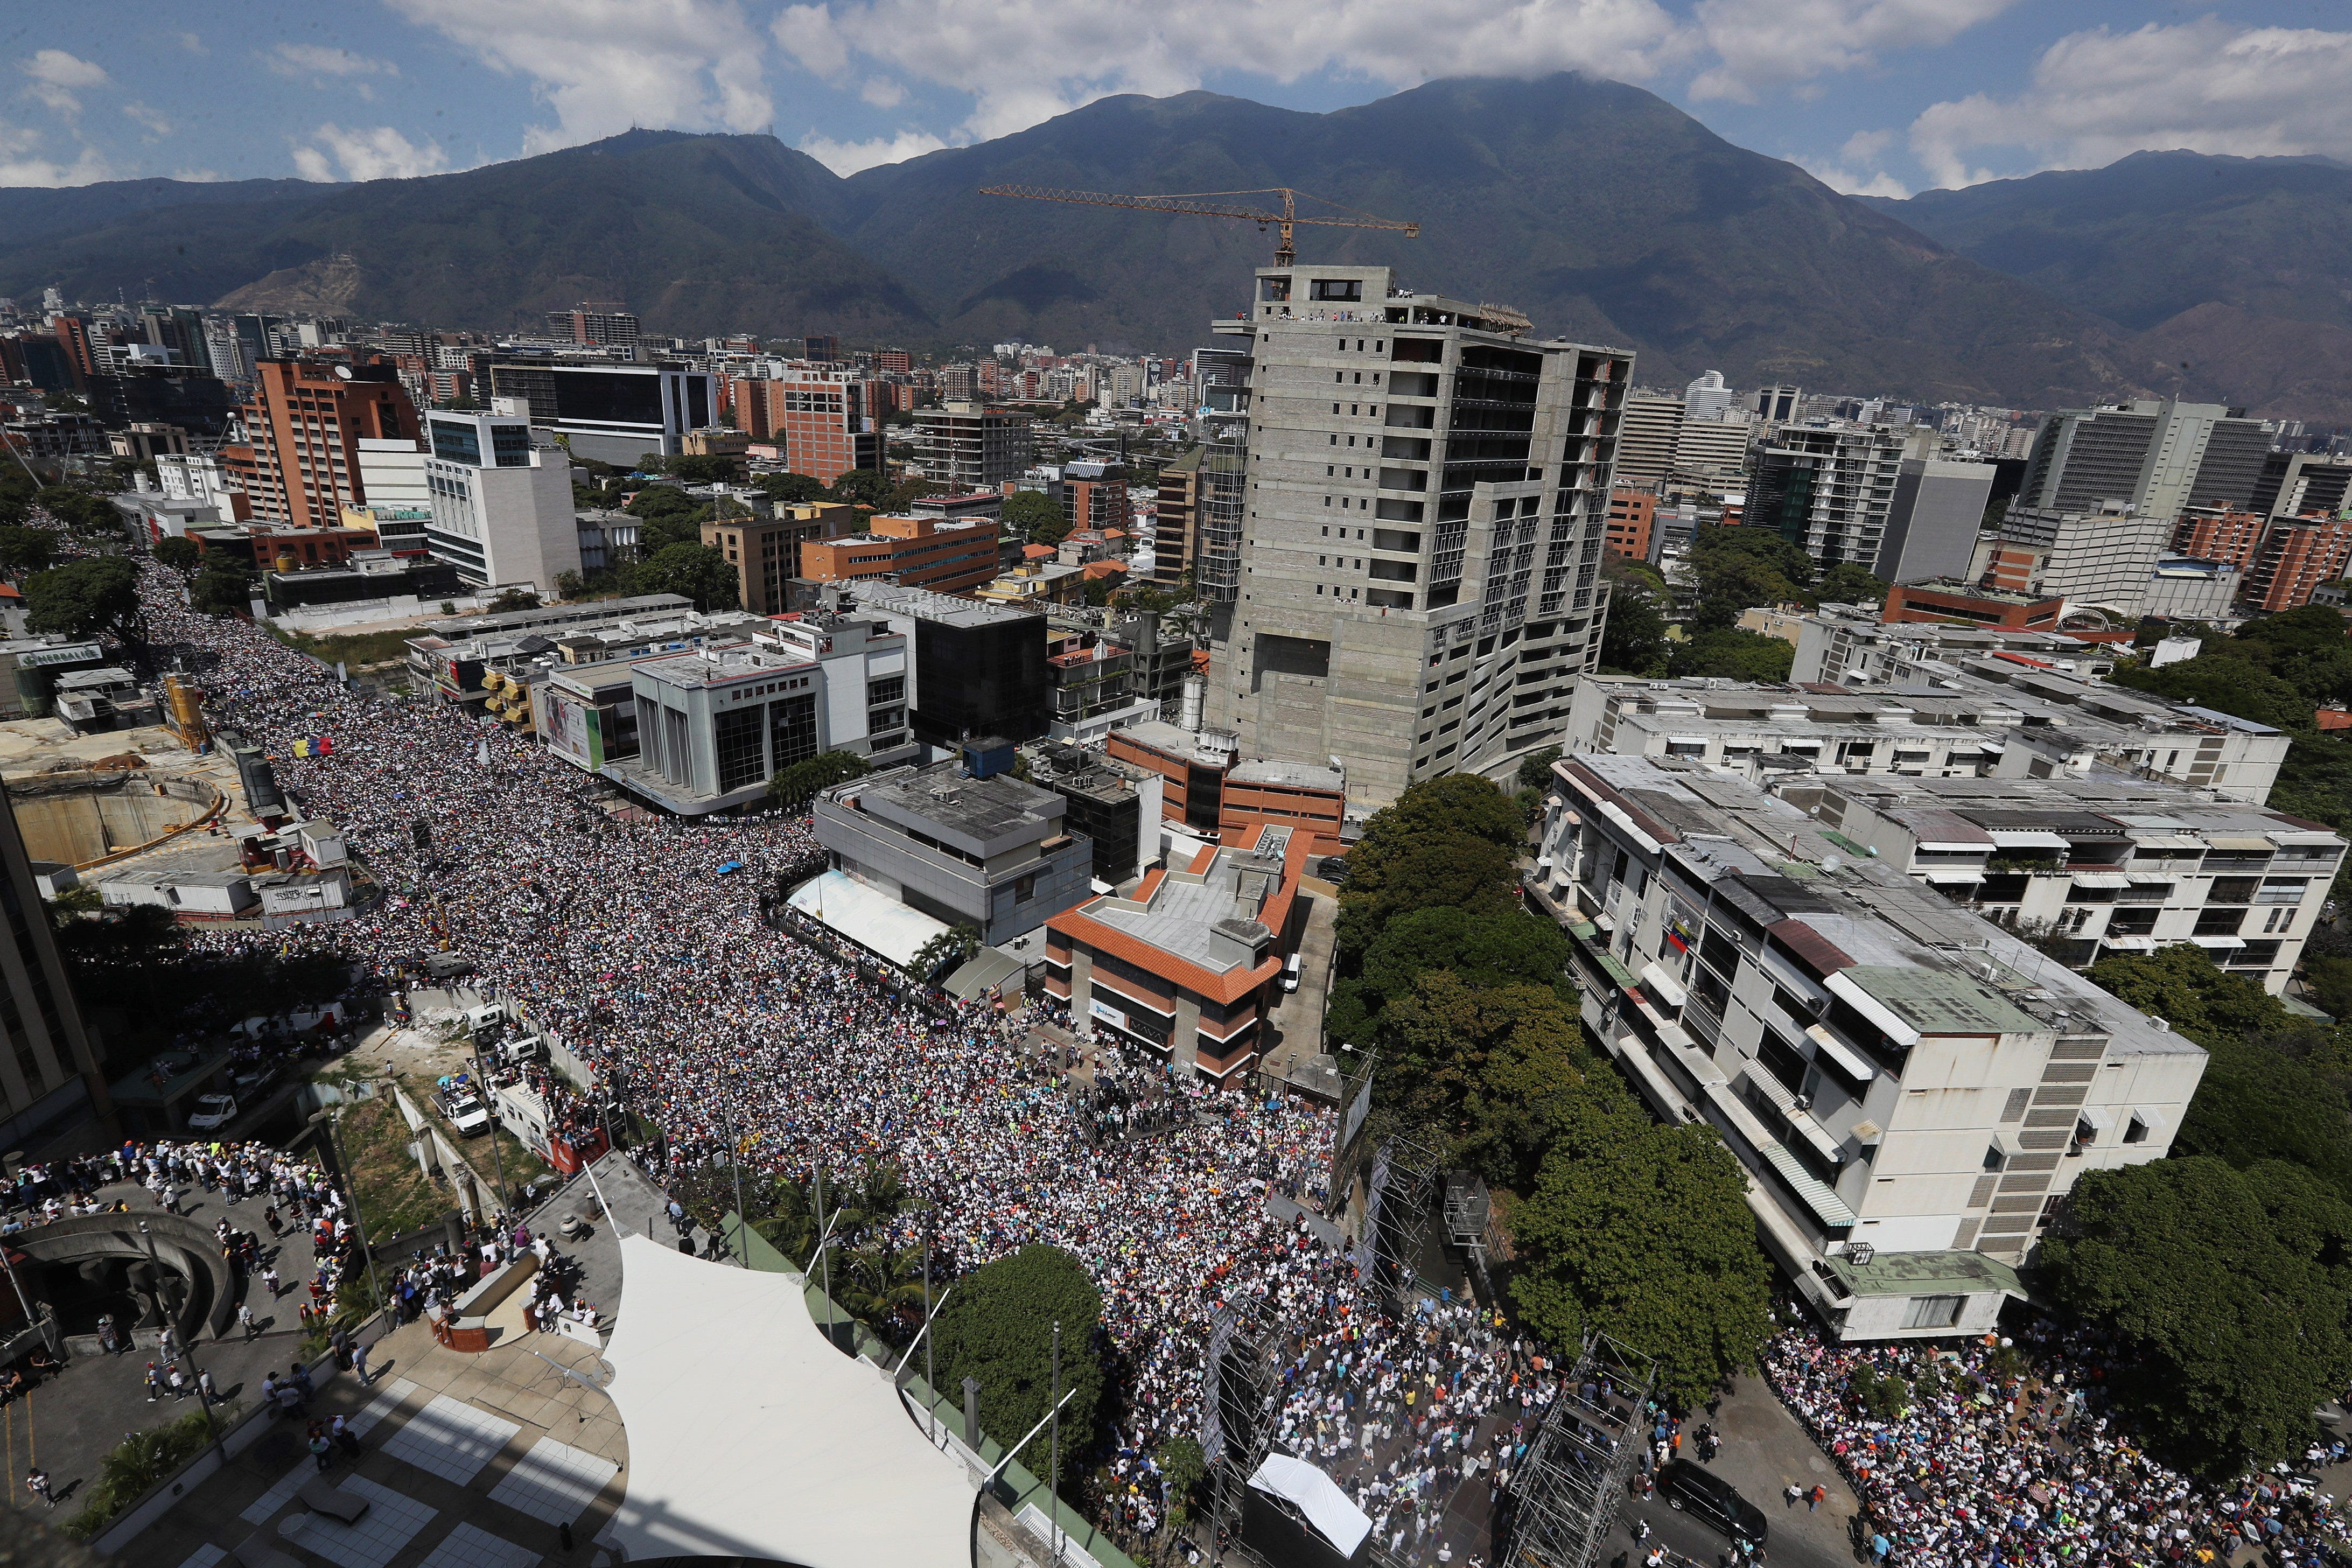 Thousands of sympathizers of the Venezuelan opposition participate in a march against Nicolas Maduro's Government, in Caracas, Venezuela on Feb. 2, 2019. Maduro and his opponent National Assembly leader Juan Guaido have called on their supporters to take to the streets as international pressure increased on Maduro to resign.